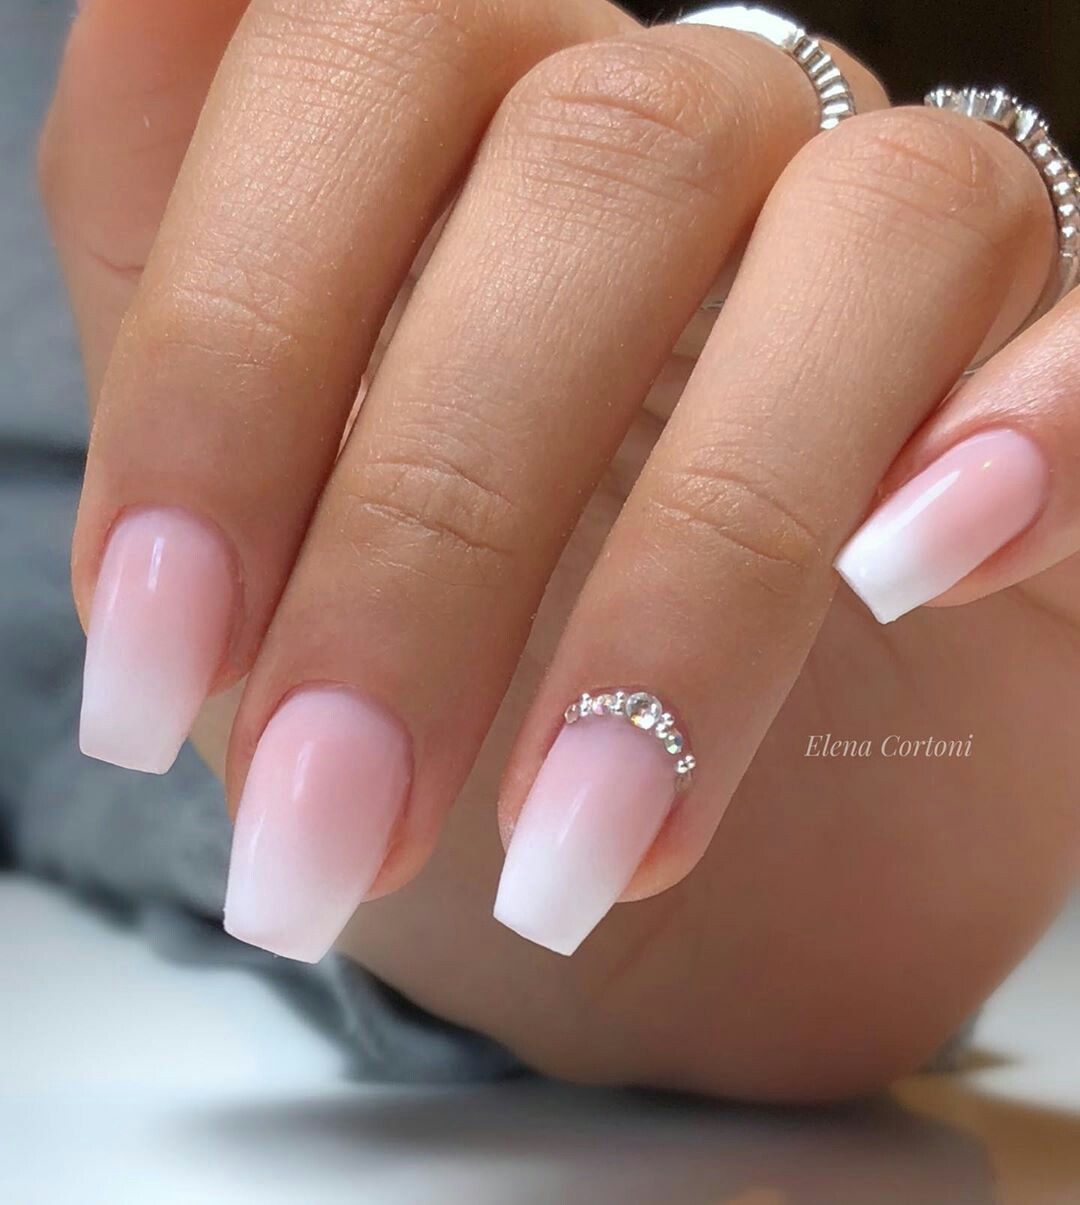 How To Do French Ombre Dip Nails Stylish Belles Short Acrylic Nails Designs Coffin Shape Nails Short Coffin Nails Designs